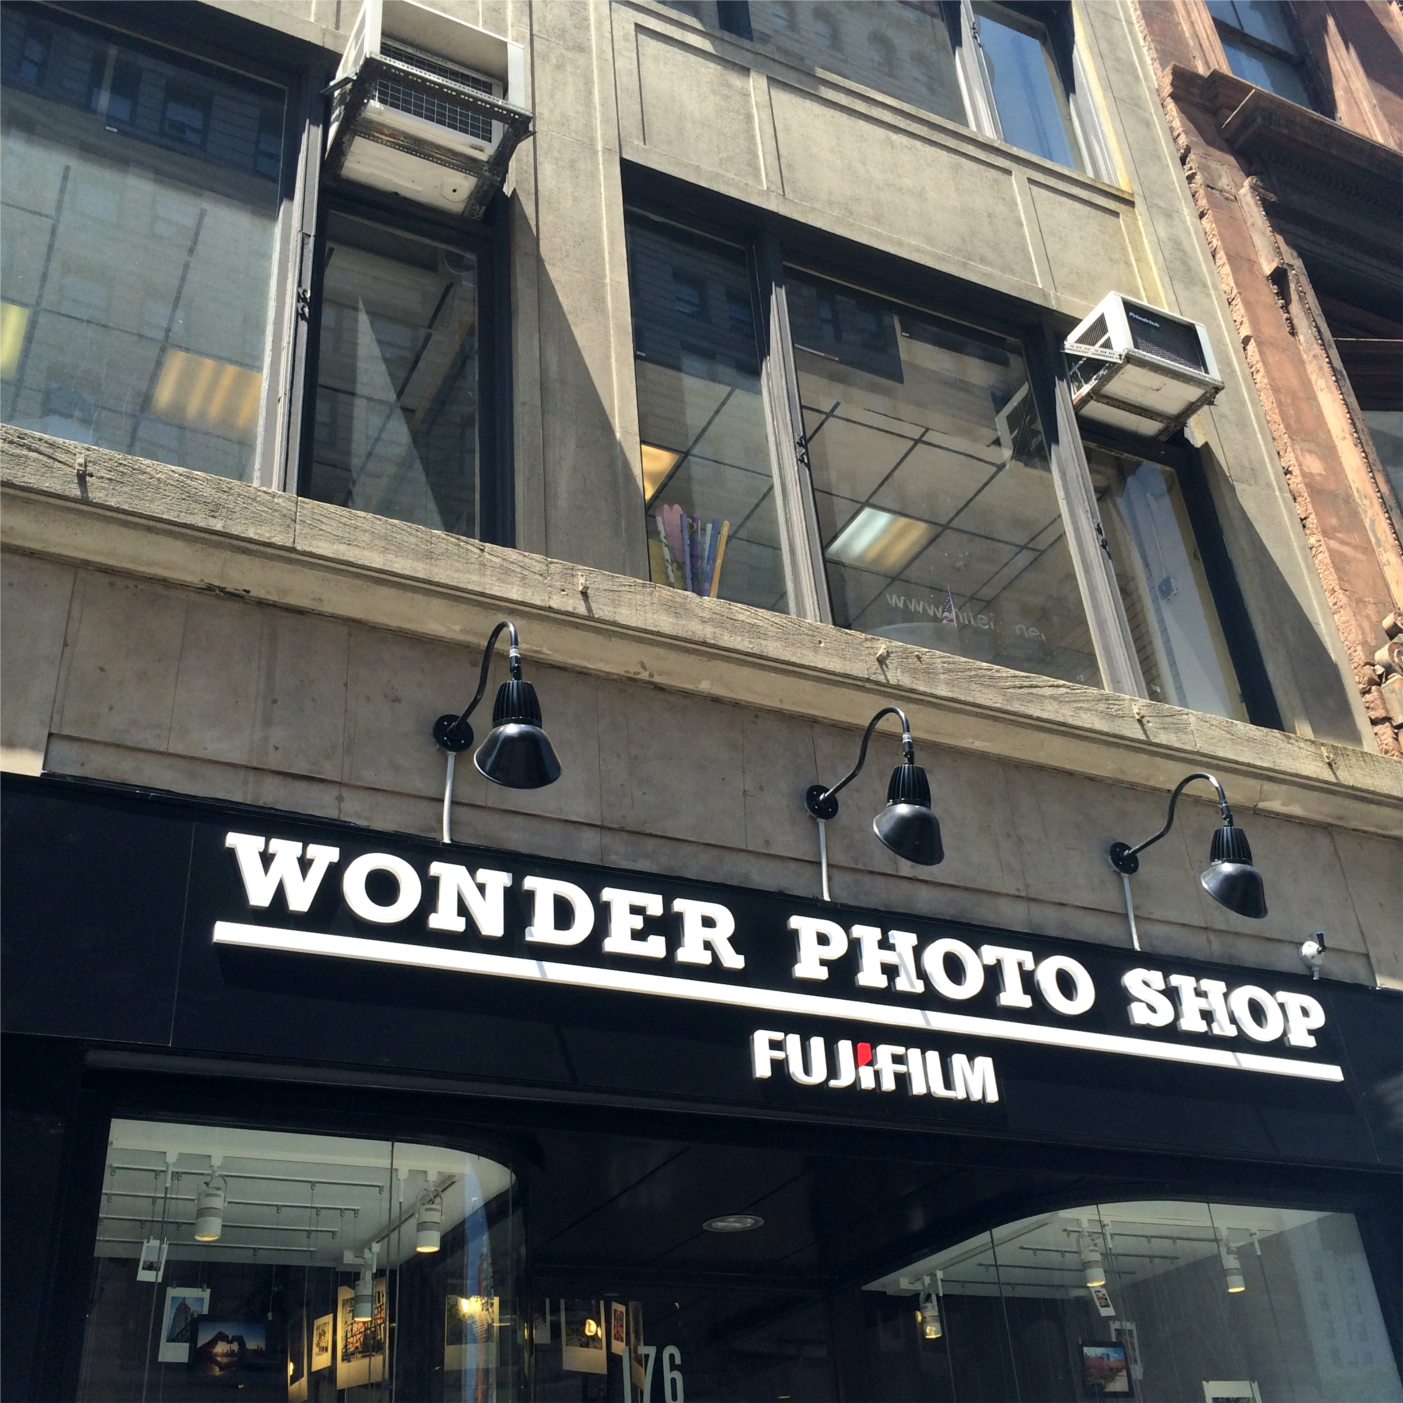 Unique Things to do in NYC: Fujifilm Wonder Photo Shop